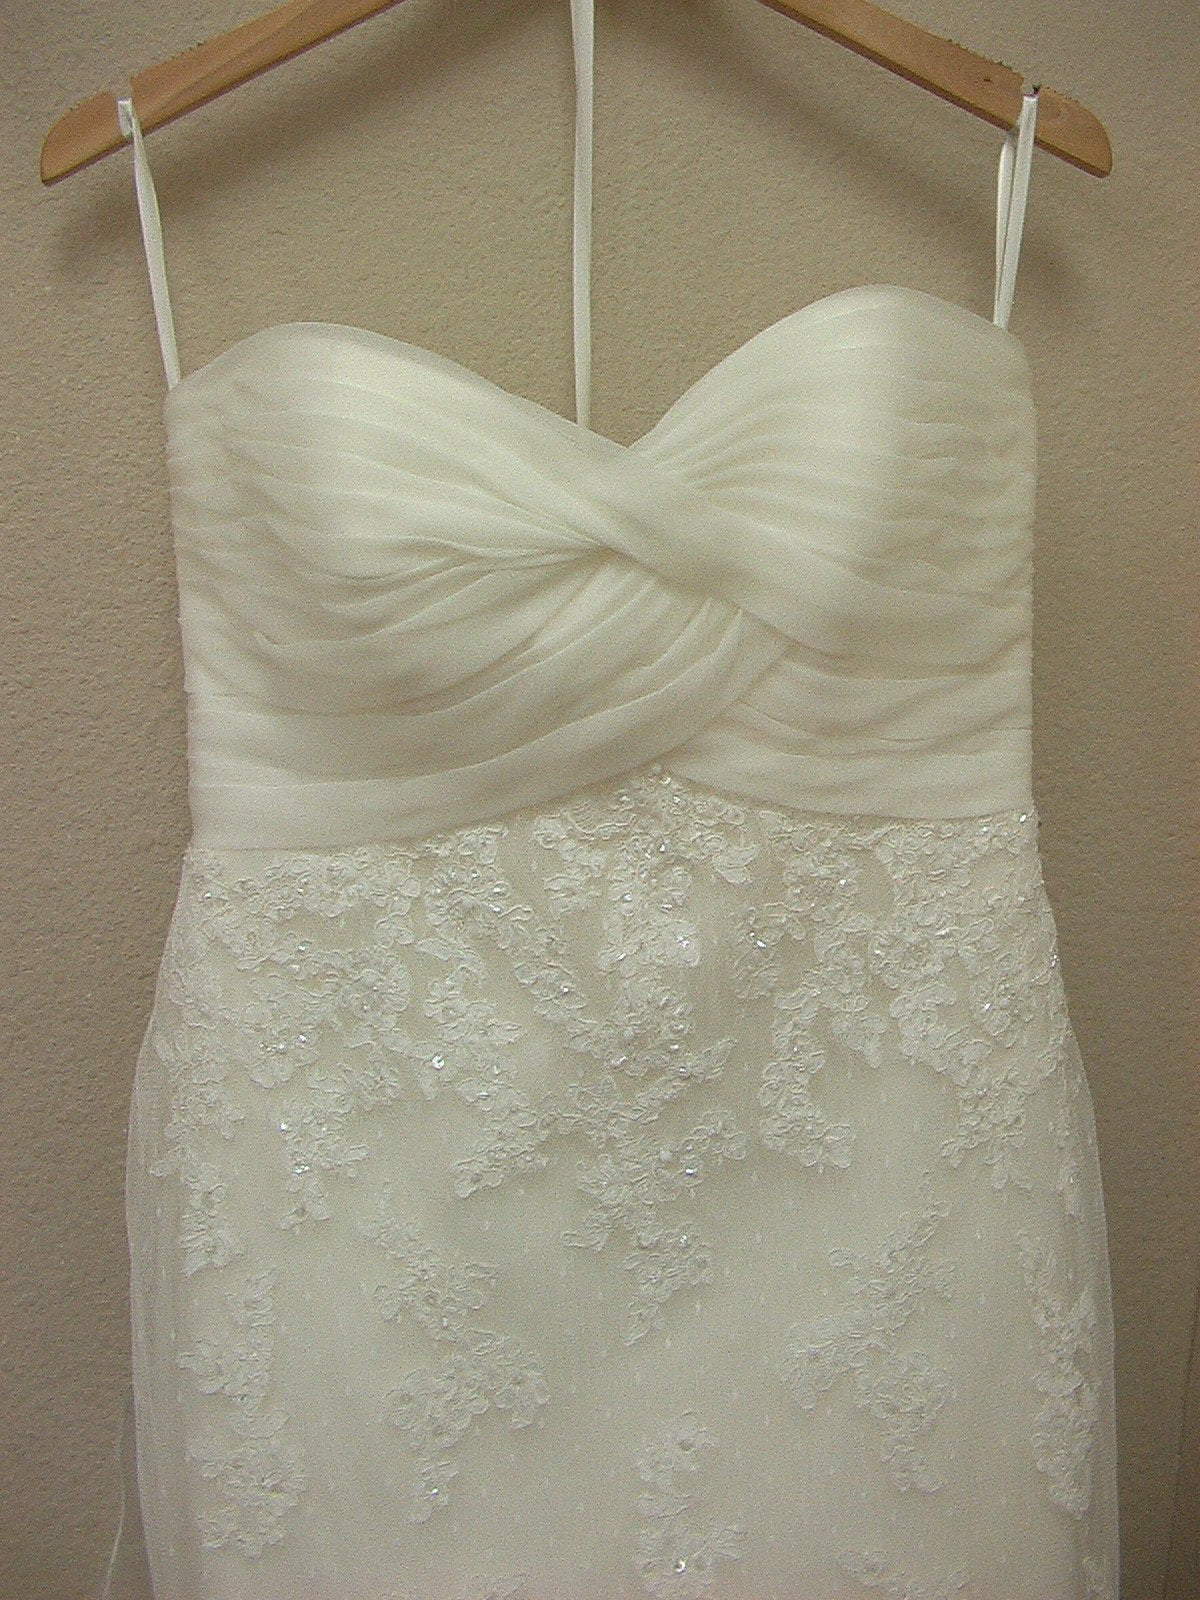 White One 3052 by Pronovias Off White size 10 In Stock Wedding Dress - Tom's Bridal